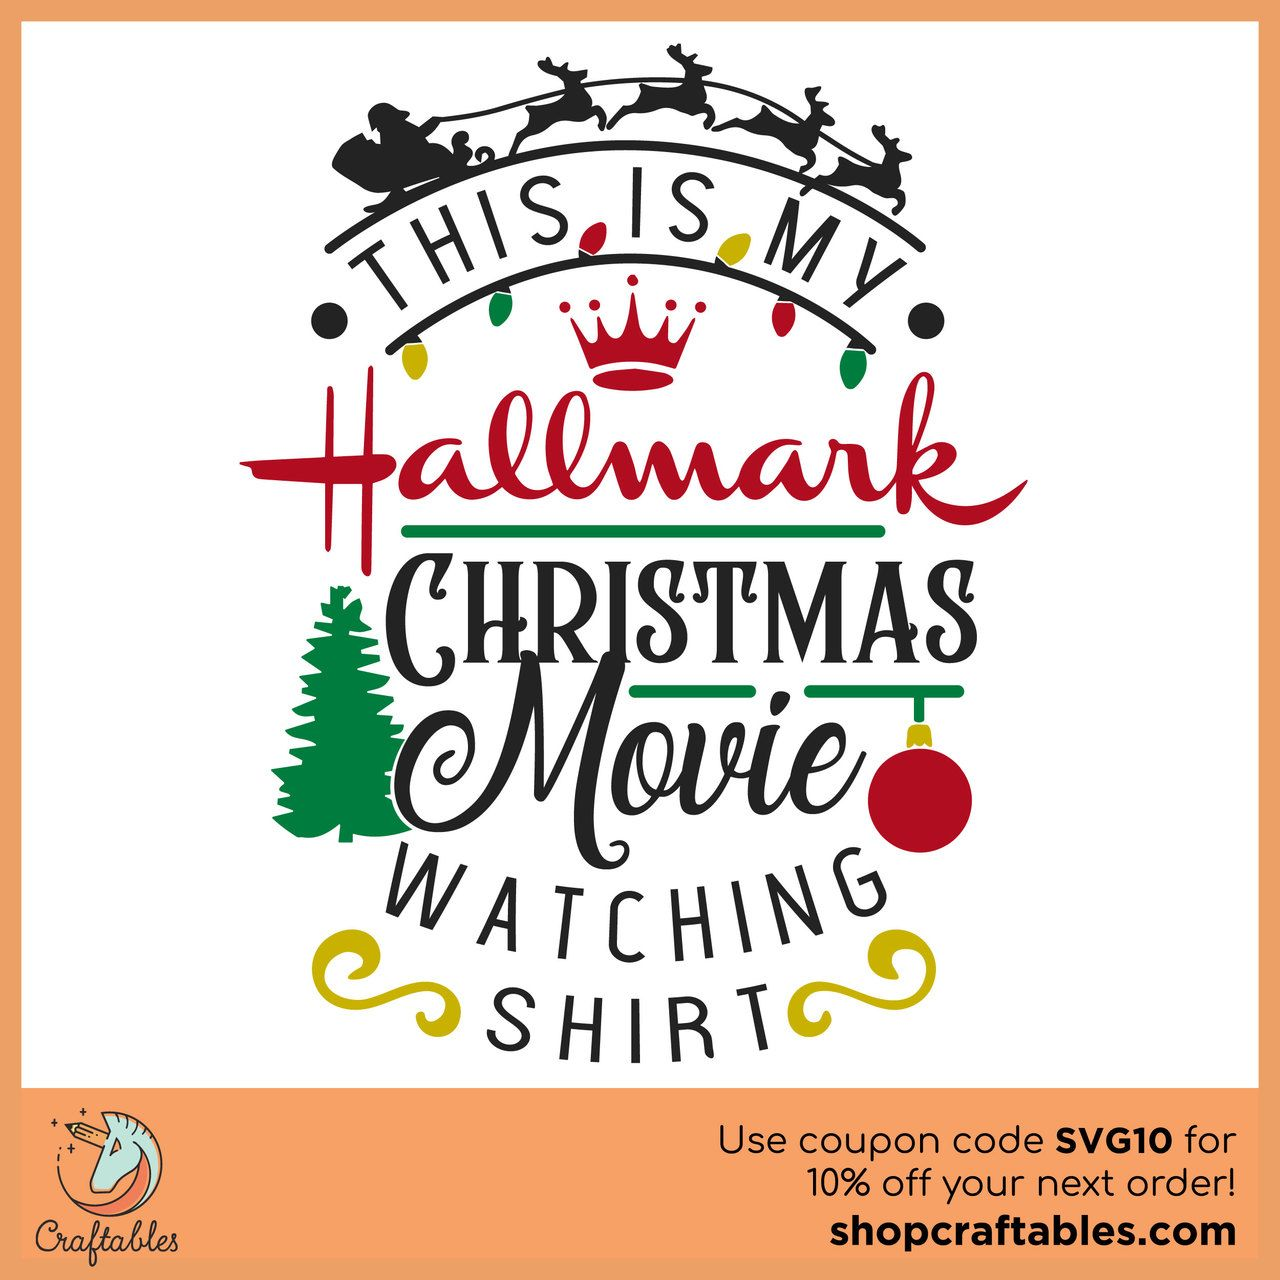 Free This Is My Hallmark Christmas Movie-Watching Shirt SVG Cut File #cricutvinylprojects